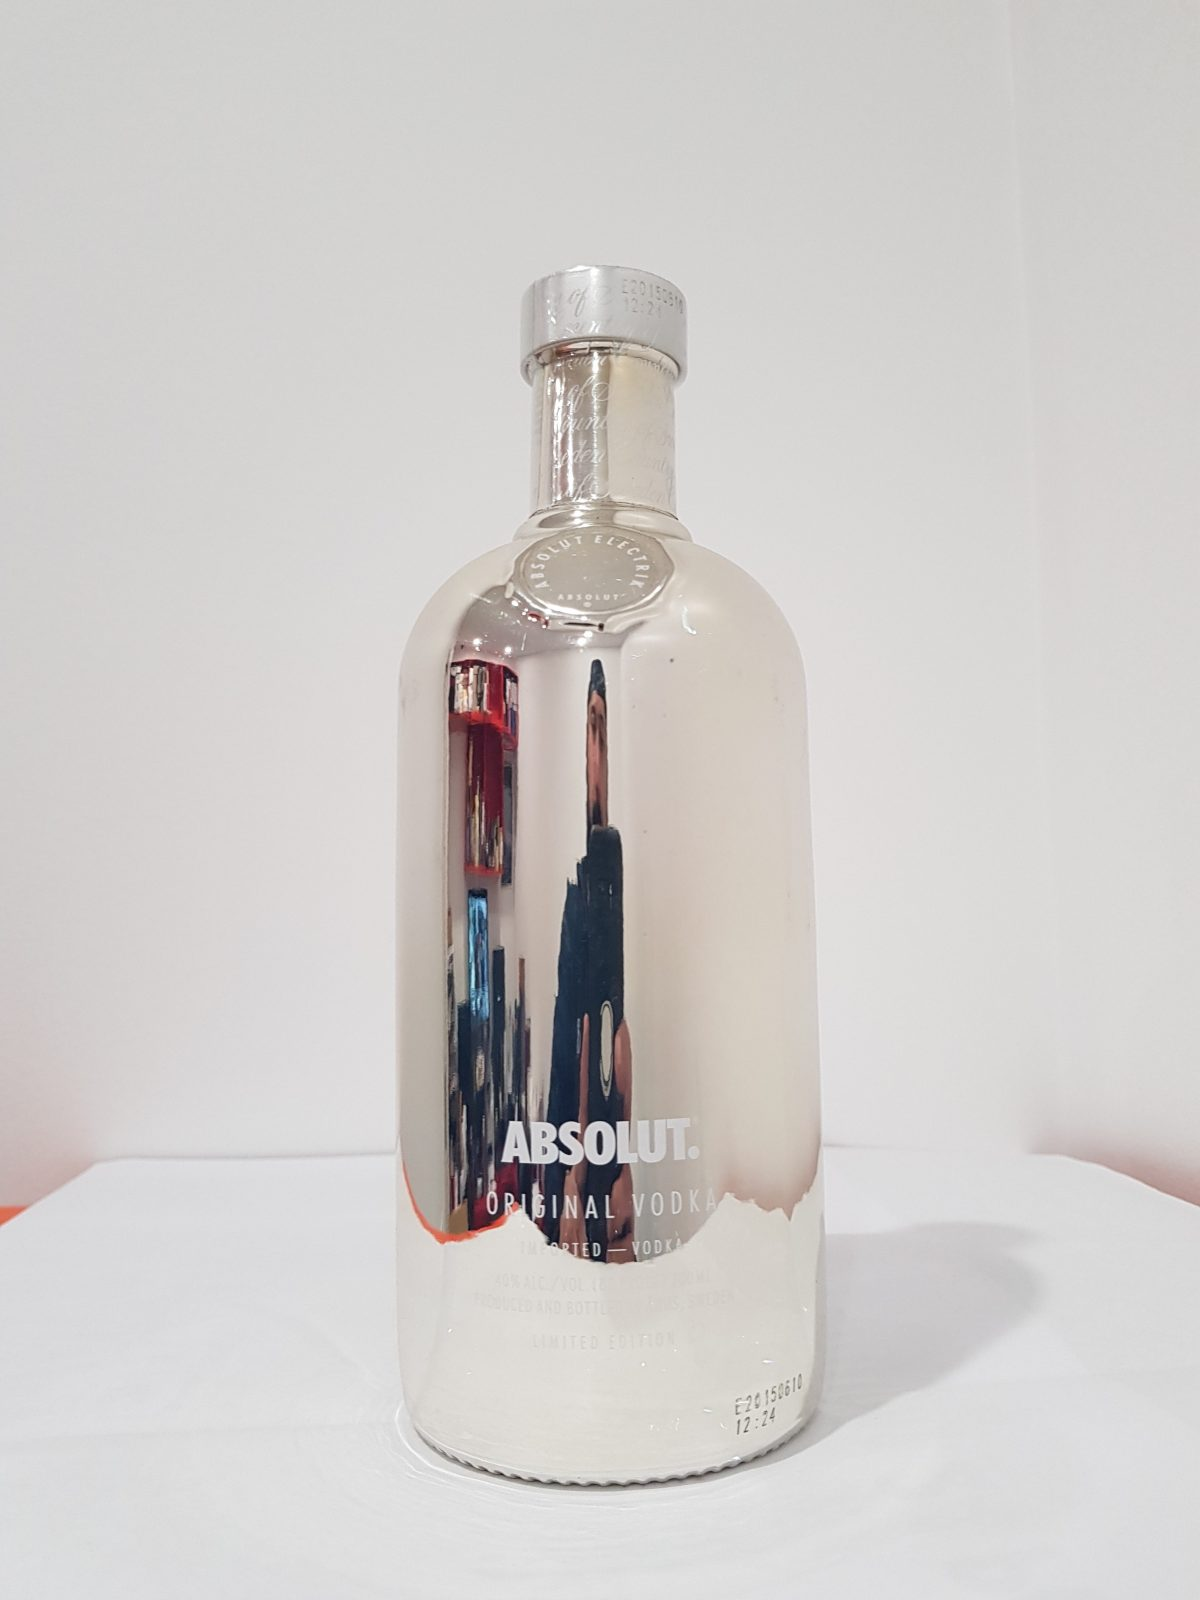 Absolut Vodka Electrik Limited Edition Silver 700mL 40 % abv